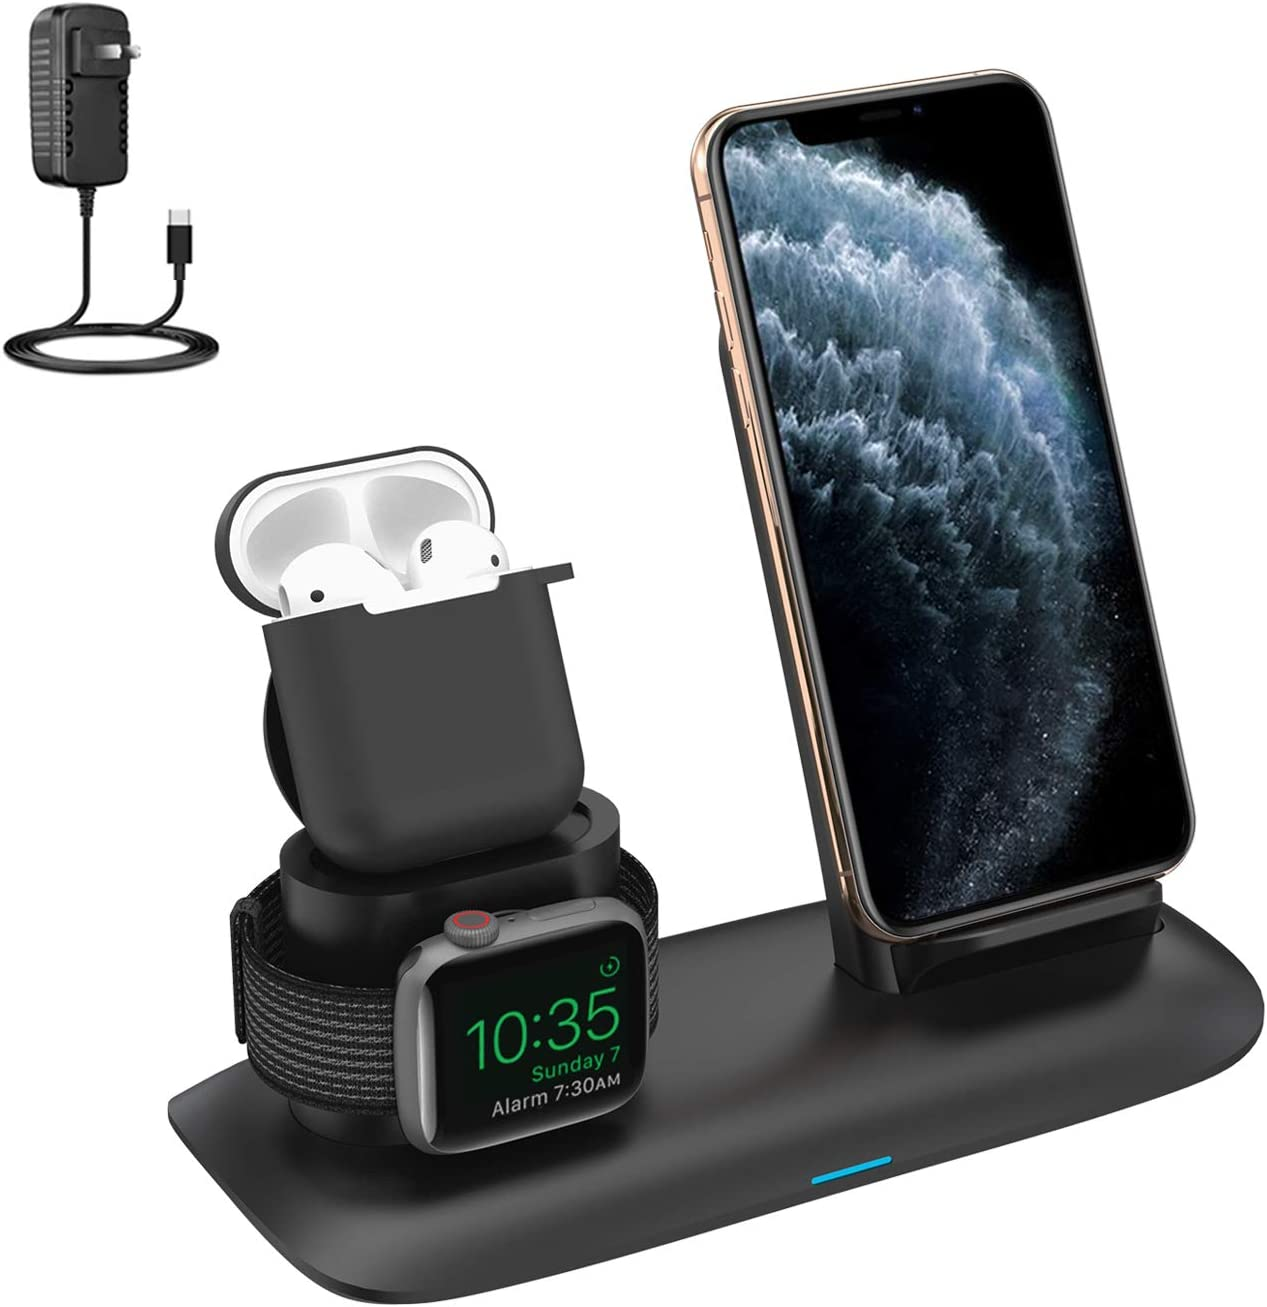 Wireless Charger, 3 in 1 Wireless Charging Stand for Latest Airpods iPhone and iWatch, Wireless Charging Station Compatible for iPhone 11/11 Pro Max/X/XS Max/8 Apple Watch Charger 5 4 3 2 1 Airpods 2